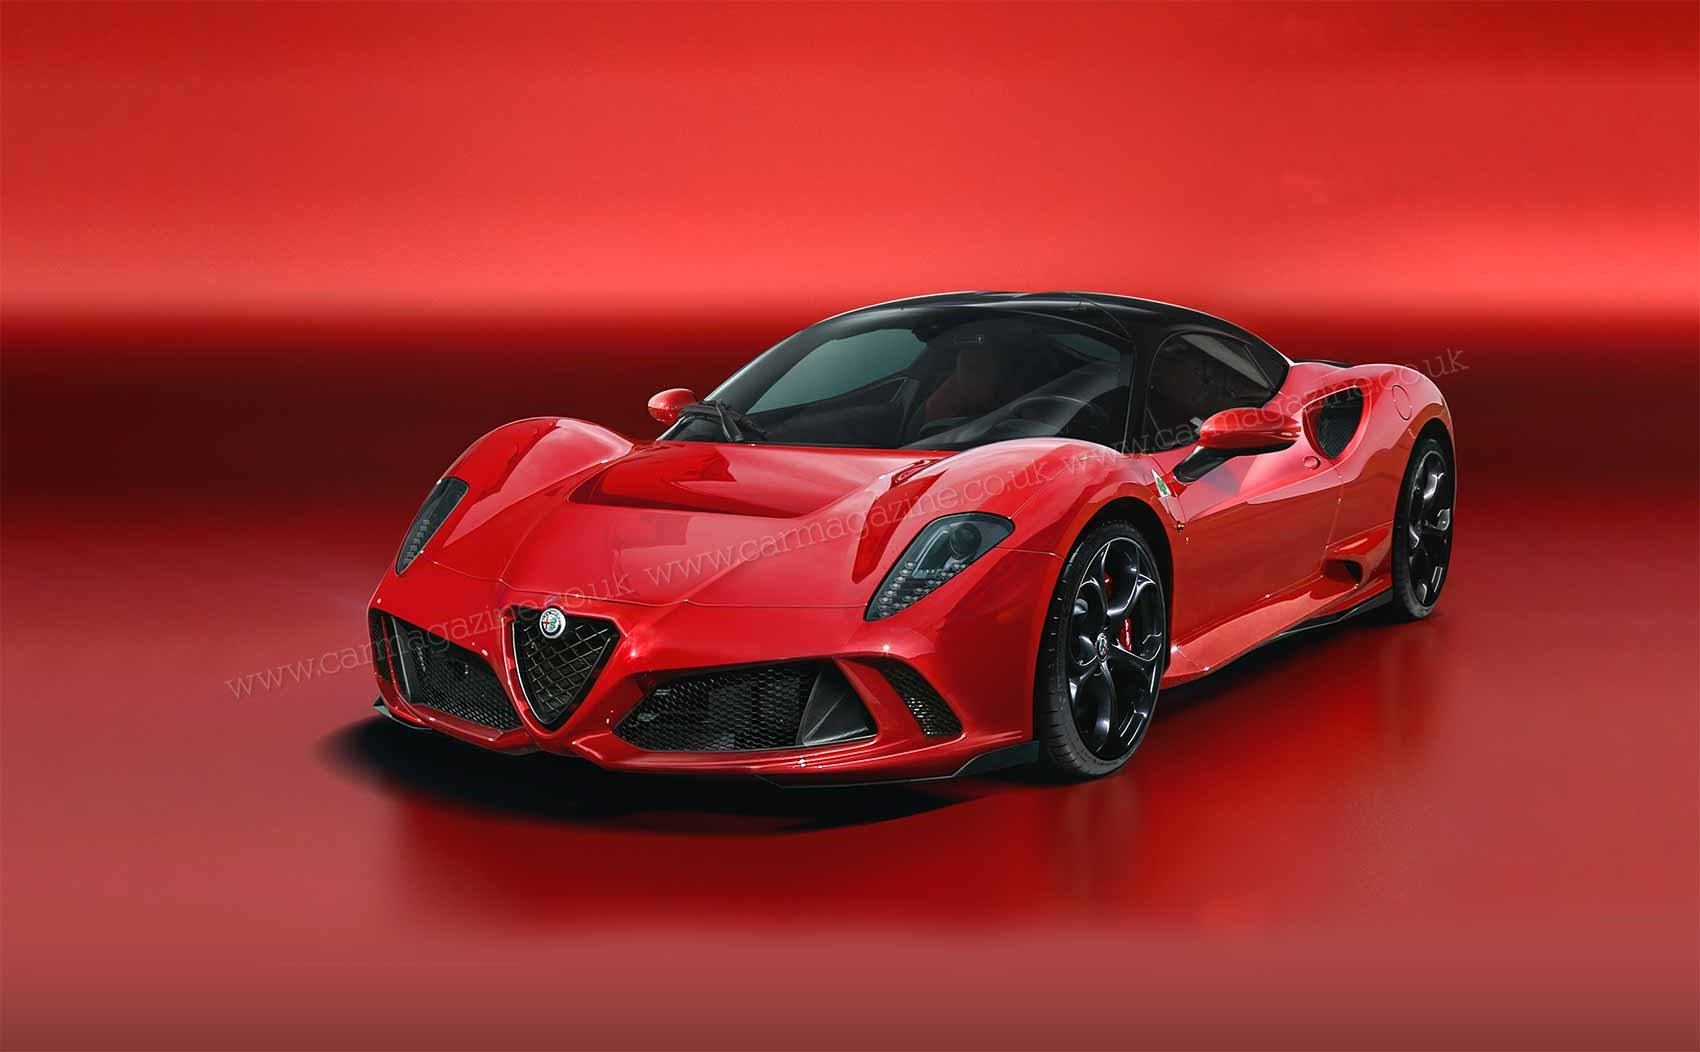 Car Magazine S Alfa Romeo 8c Artist Impression By Andrei Avarvarii Expect The New